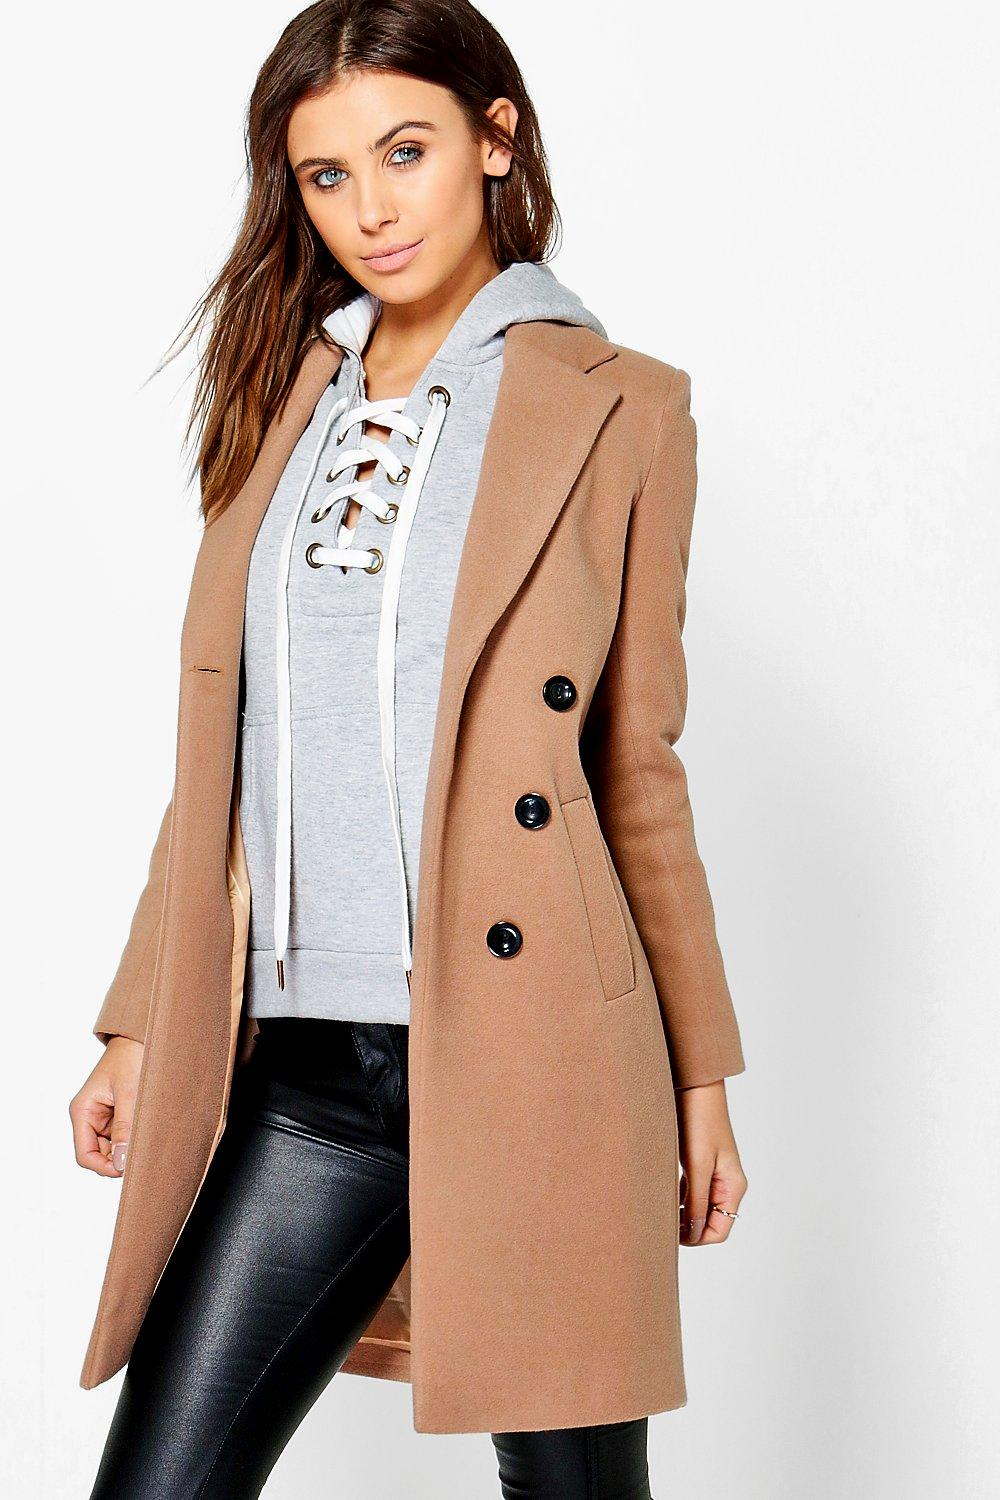 preview of fast delivery competitive price Best Petite Coats and Jackets - THINK PETITE